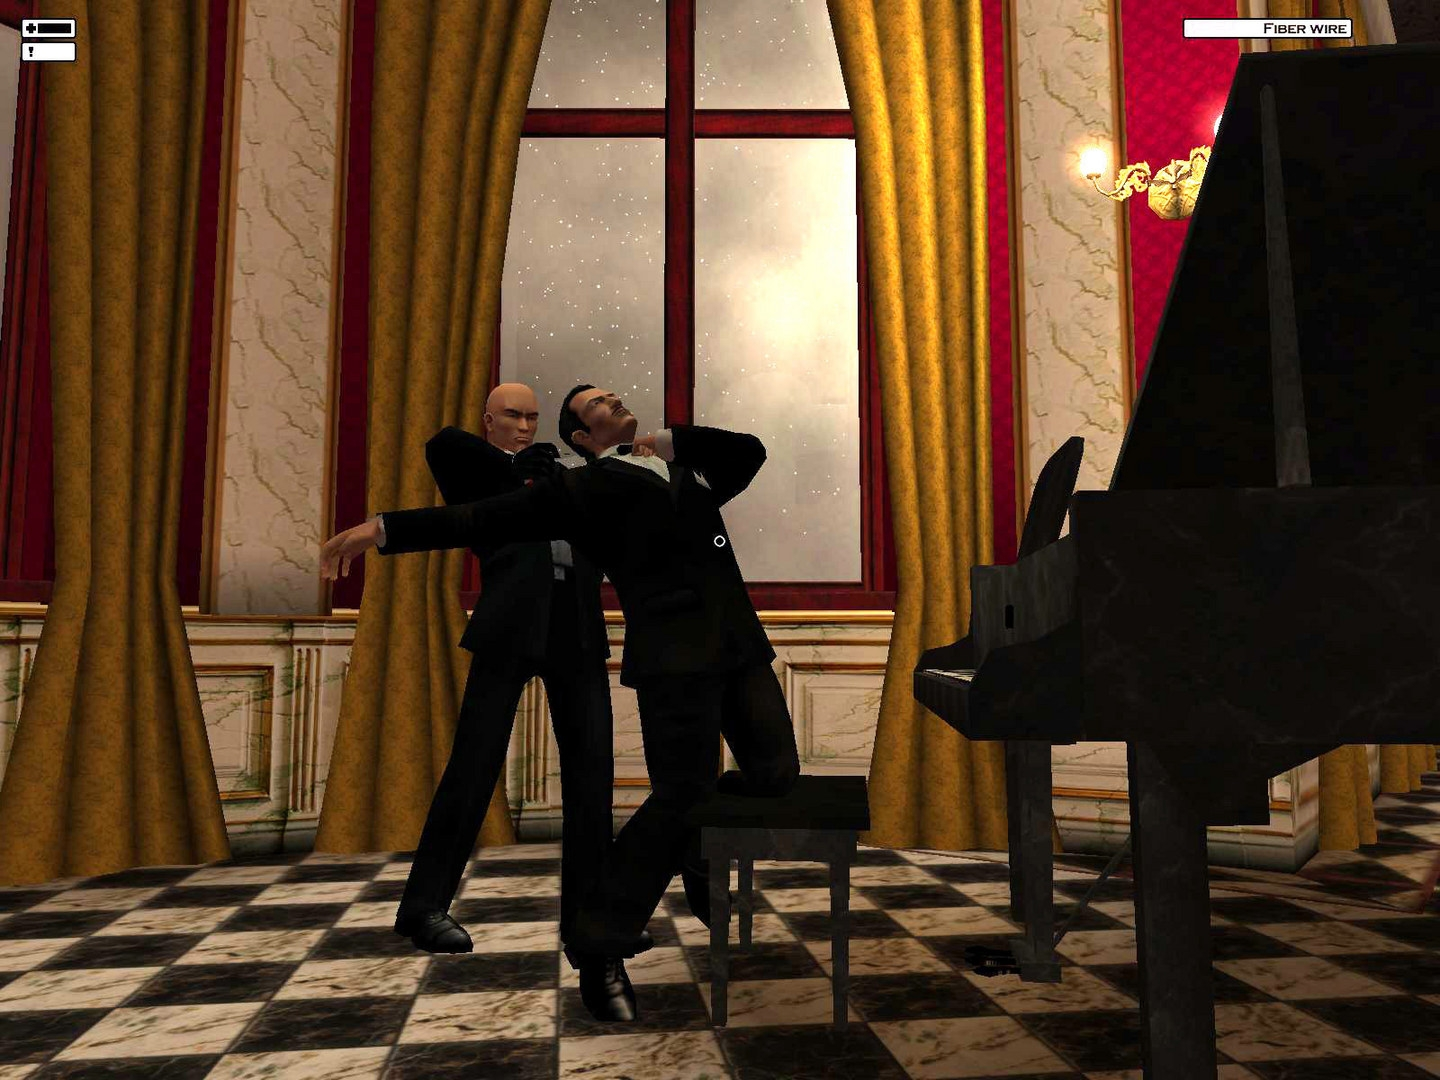 Hitman 2 silent assassin free download | freegamesdl.